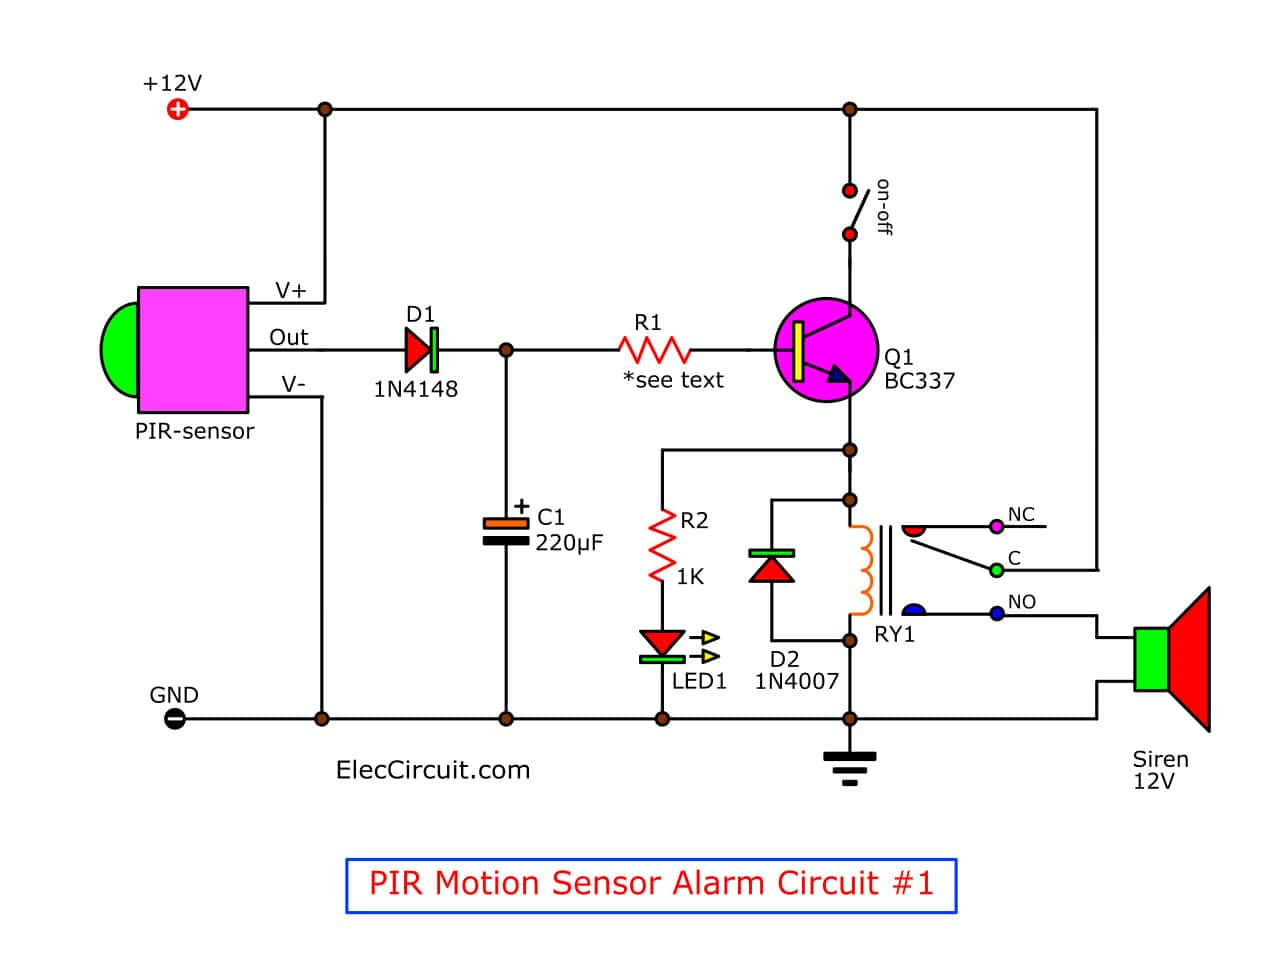 ultrasonic motion detector project with versatile controls1 ultrasonic sensor circuit project with versatile controls 5R55E Transmission Wiring Diagram at gsmx.co